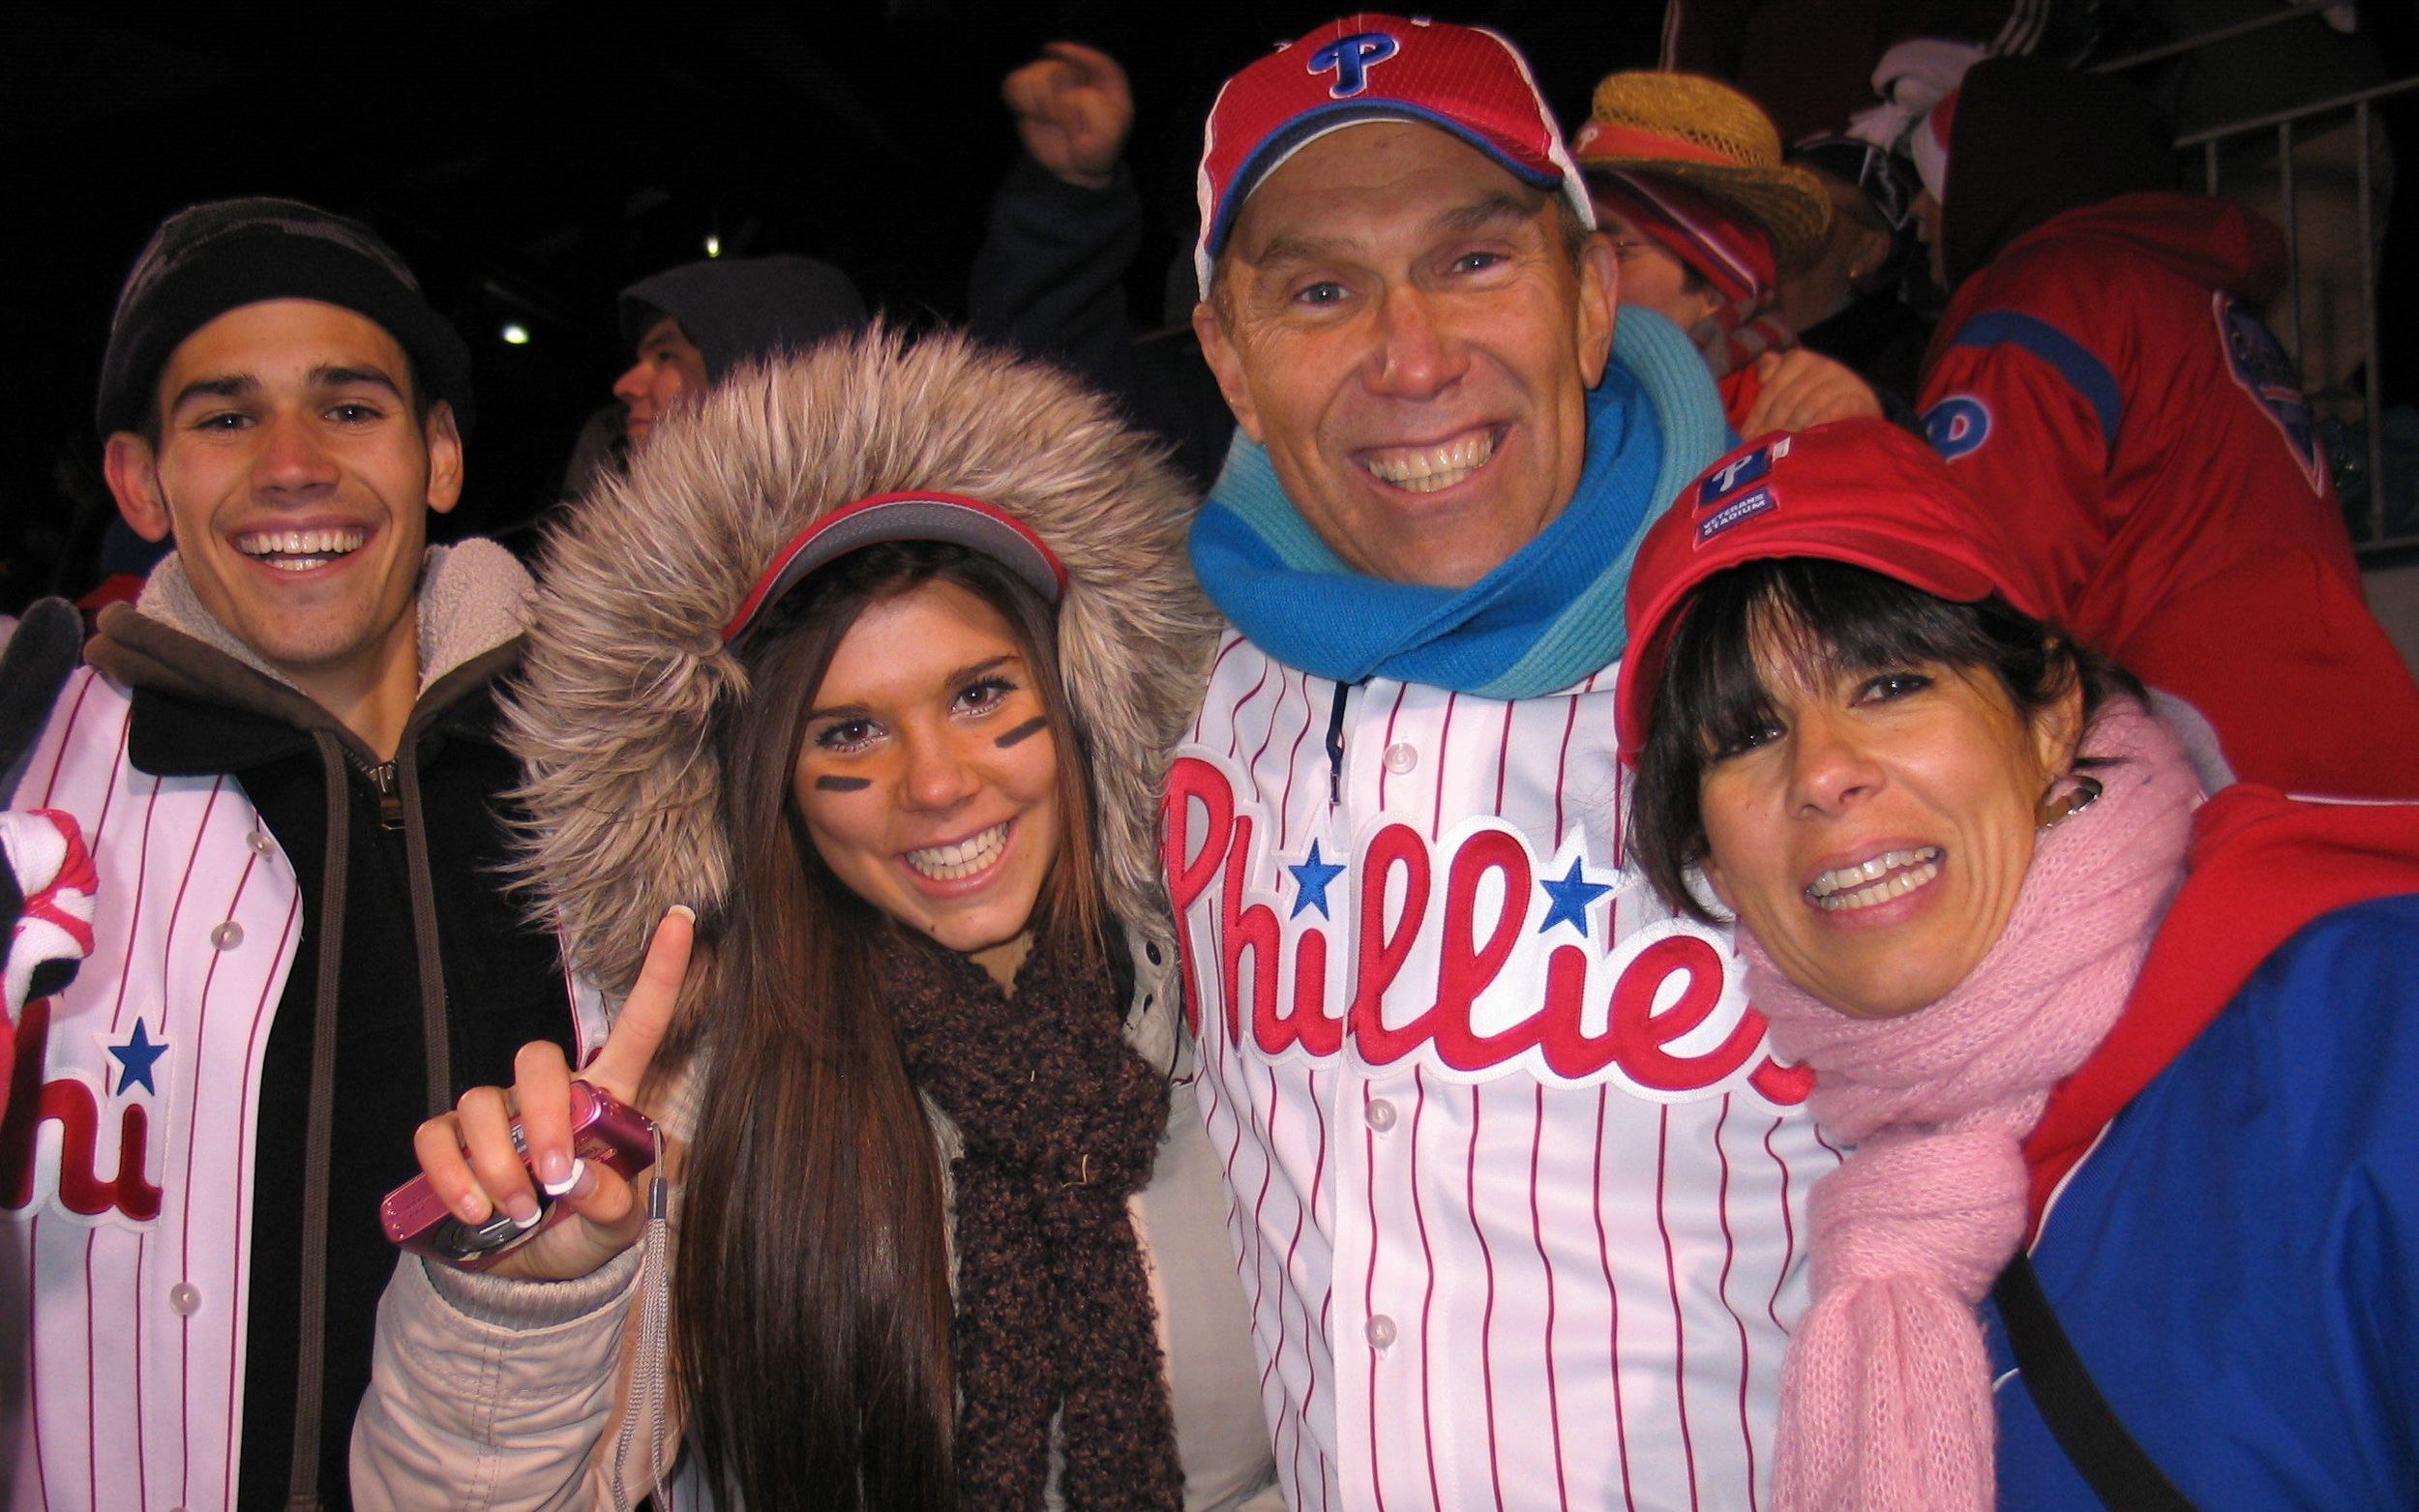 2008! Phillies Win the World Series! We are there! Crazy exciting!